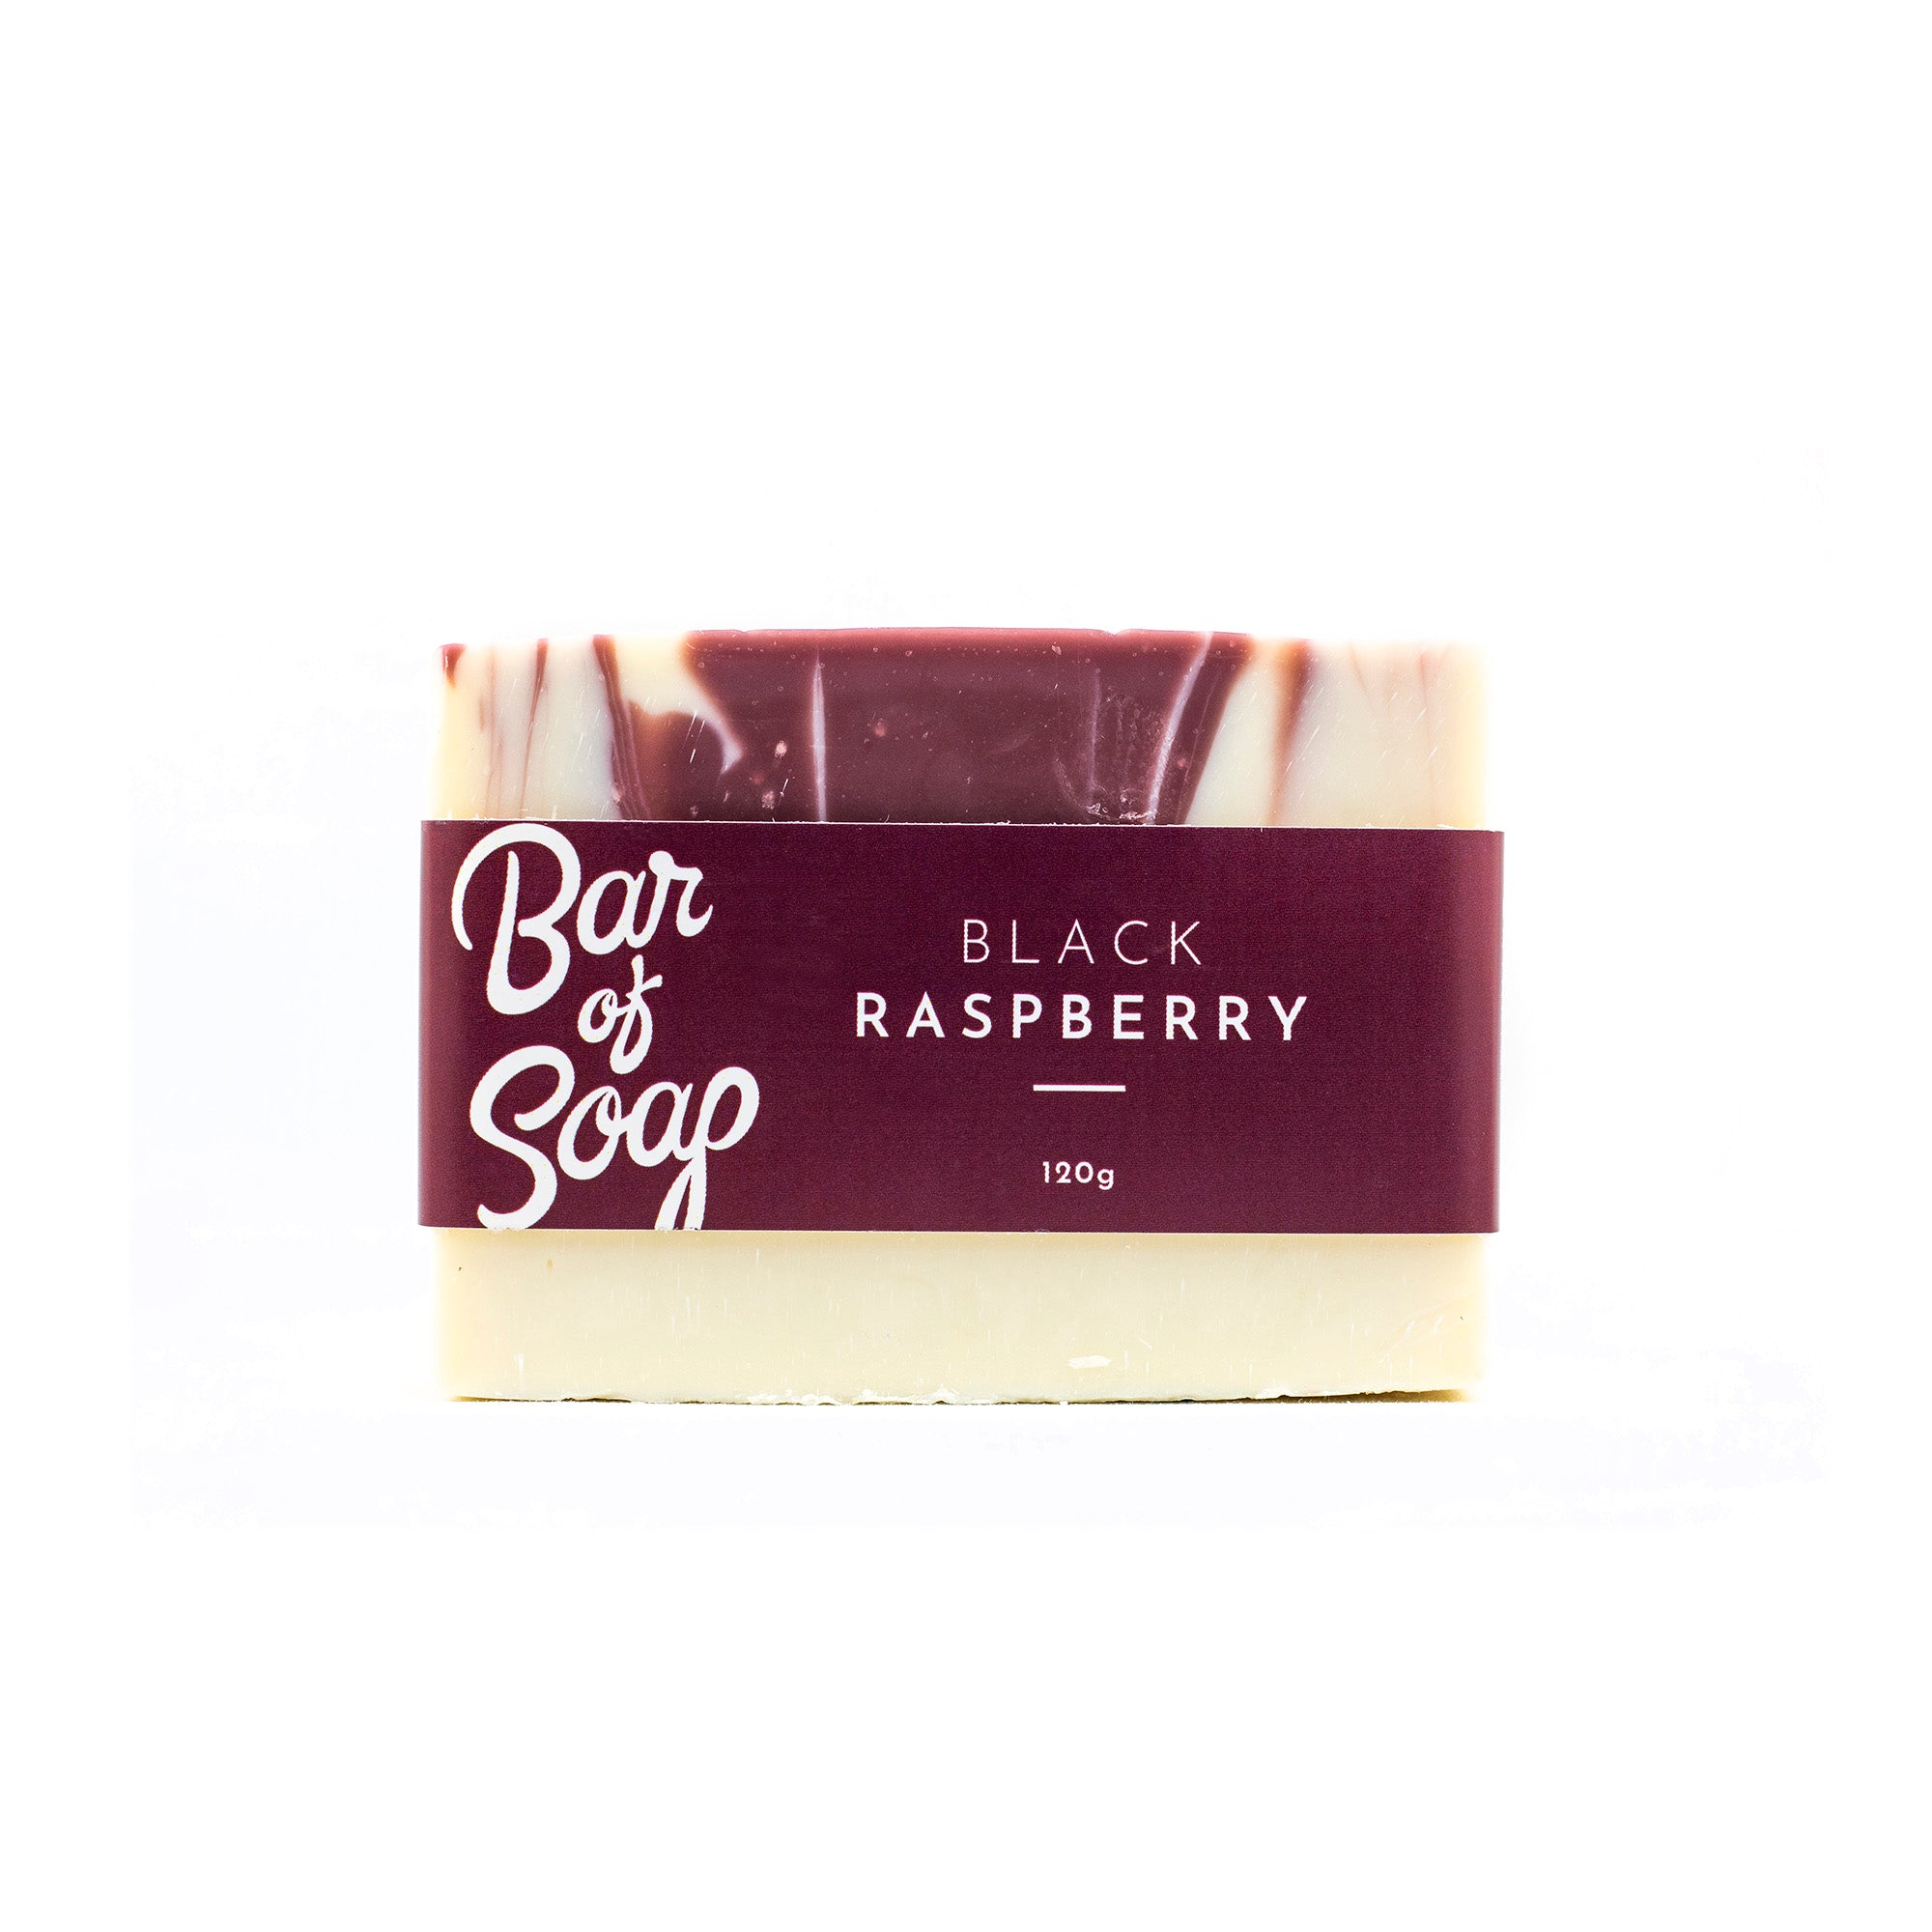 A white bar of soap with a maroon coloured drop swirl in its centre. The bar of soap is labeled with a black raspberry Bar of Soap label.